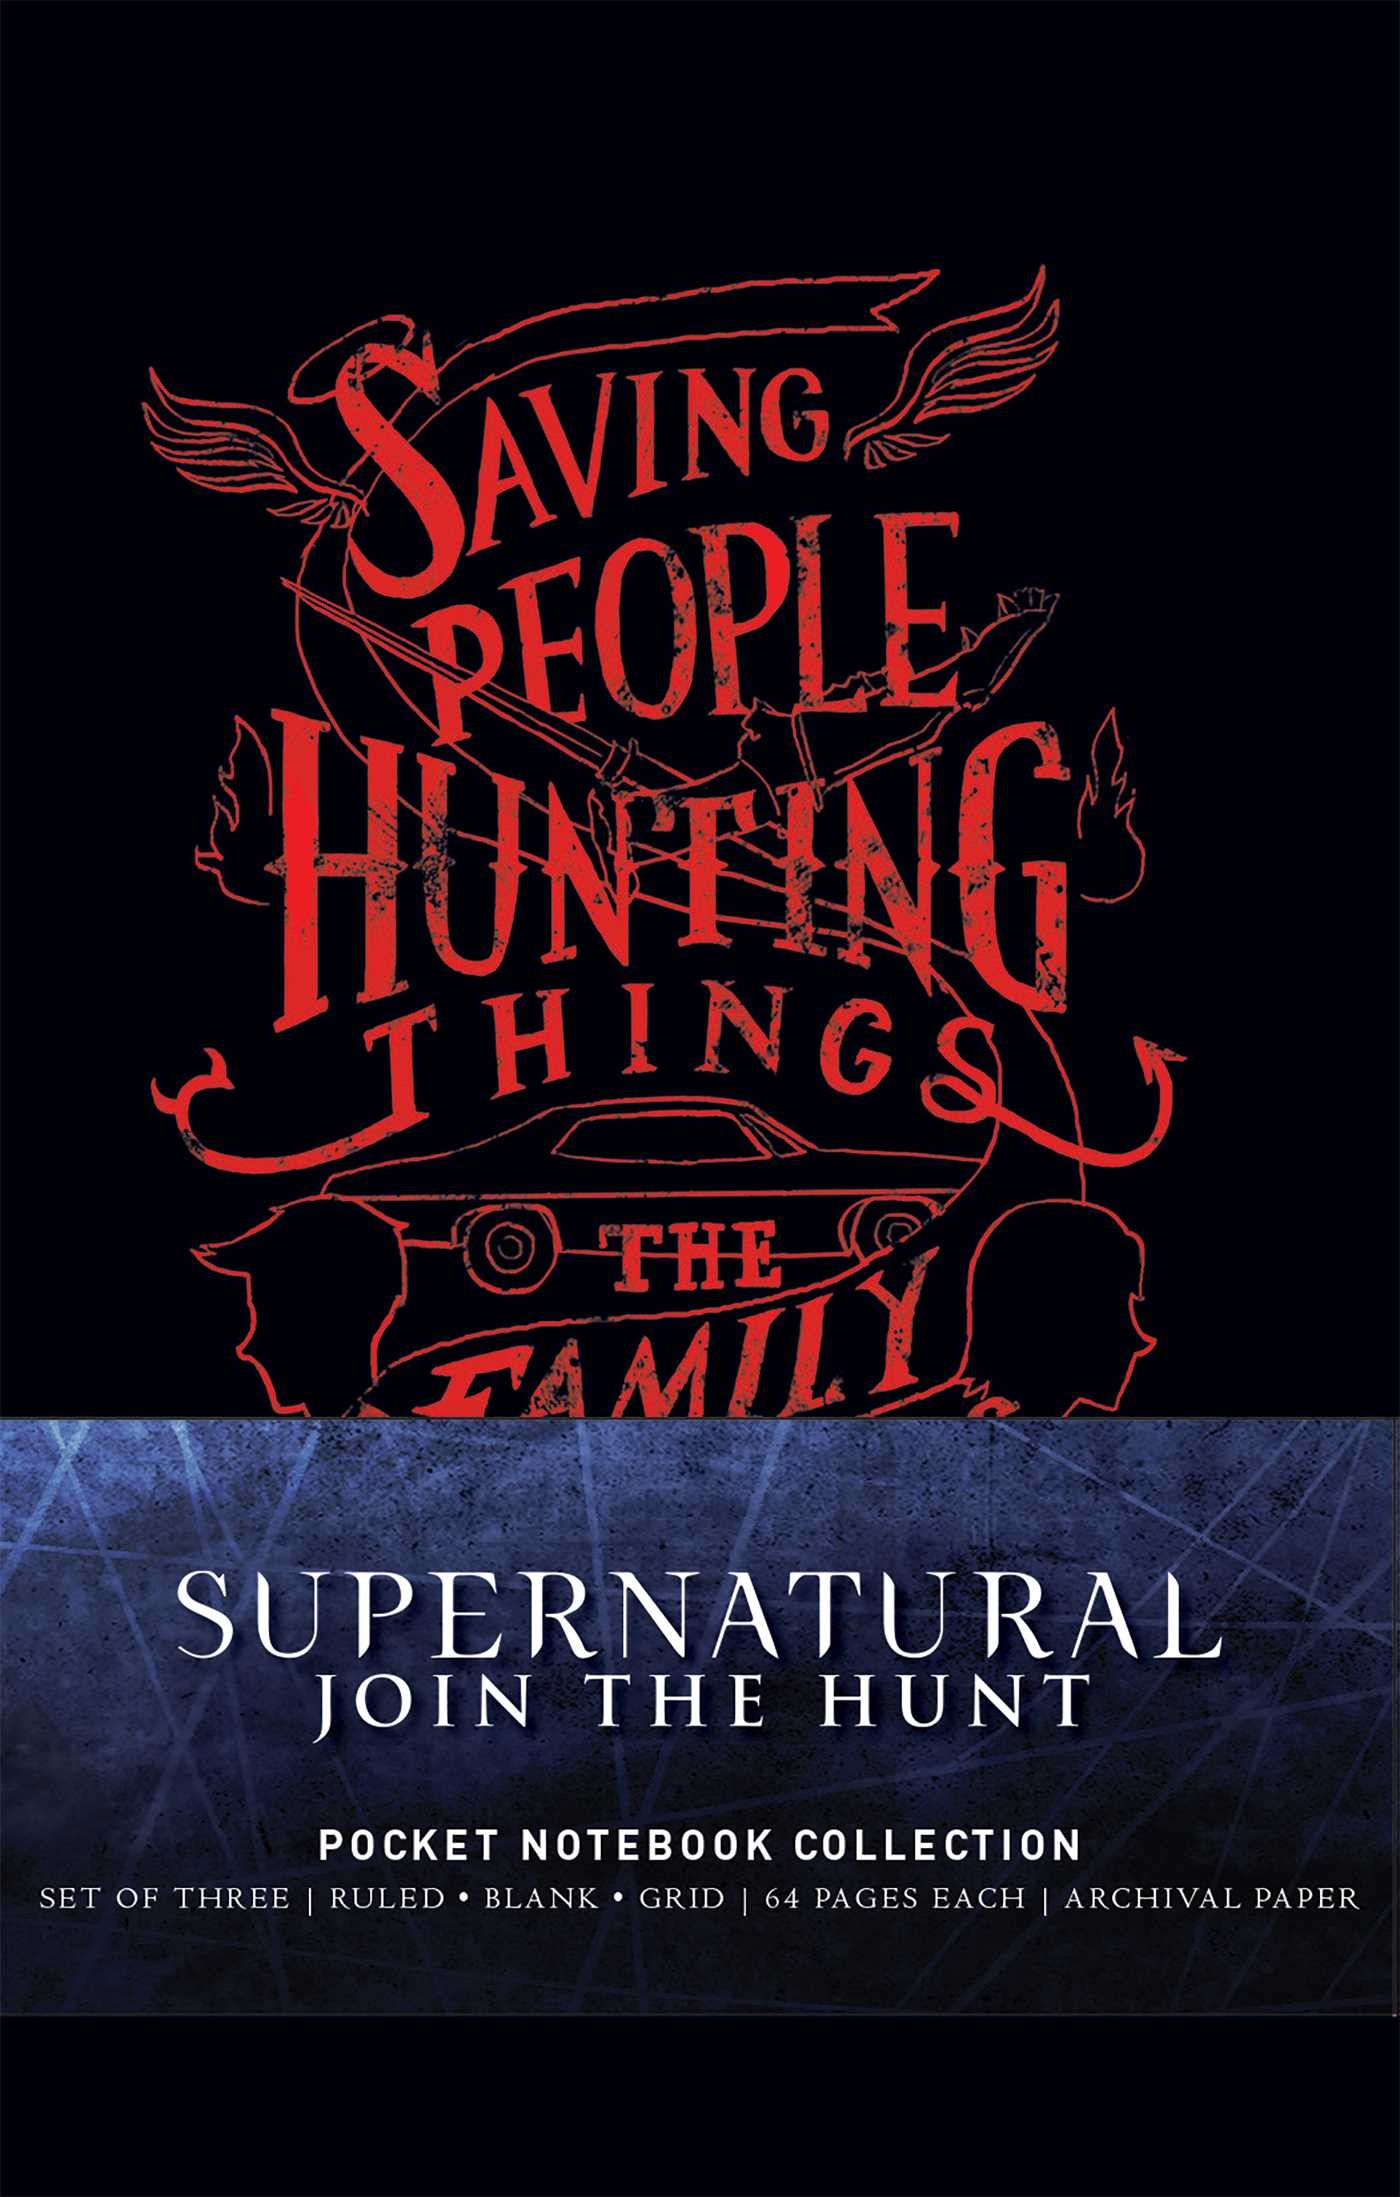 Supernatural pocket notebook collection set of 3 9781683835264.in01